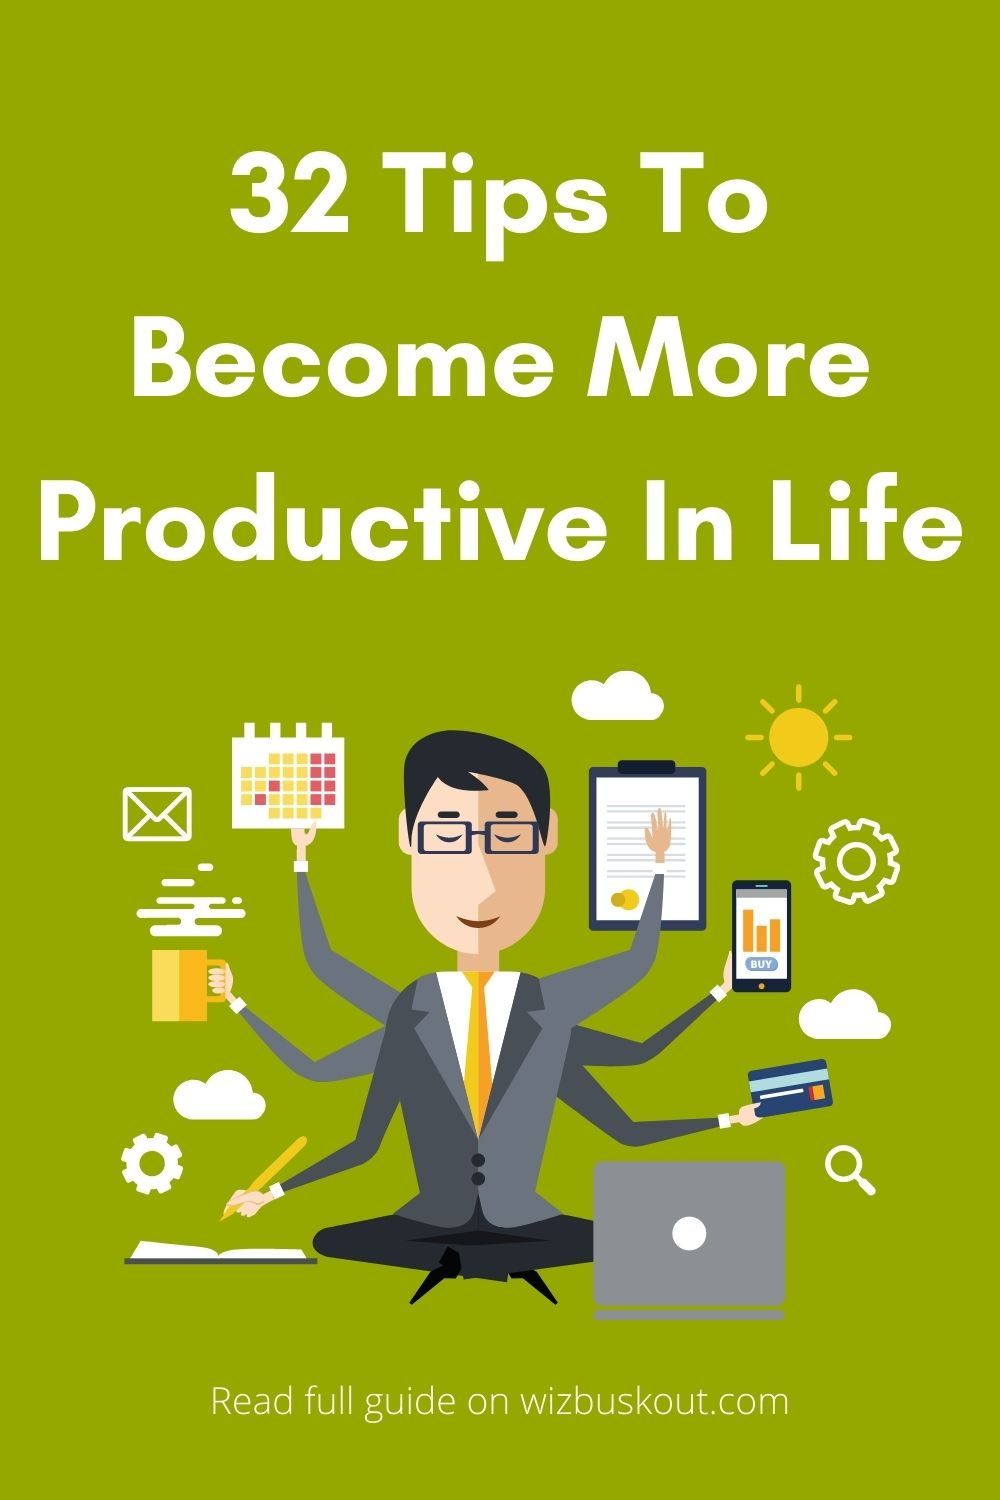 32 Tips To Become More Productive In Life